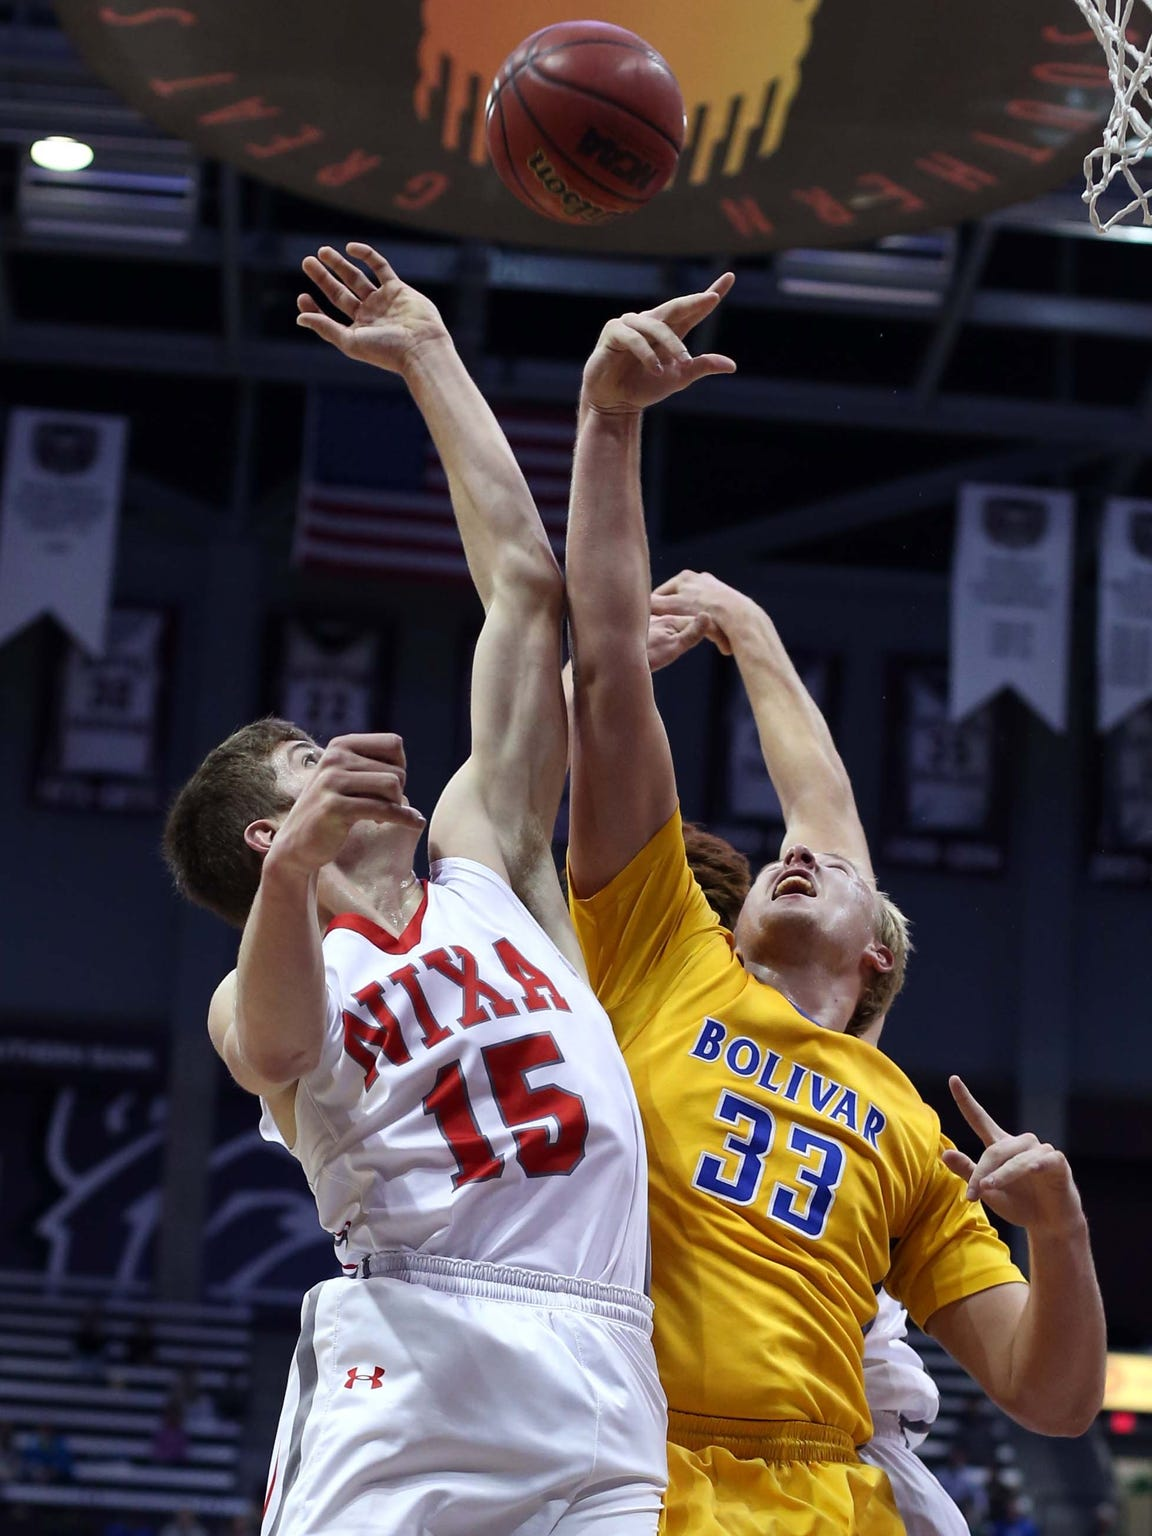 Bolivar's Brandon Emmert (right) battles for a rebound